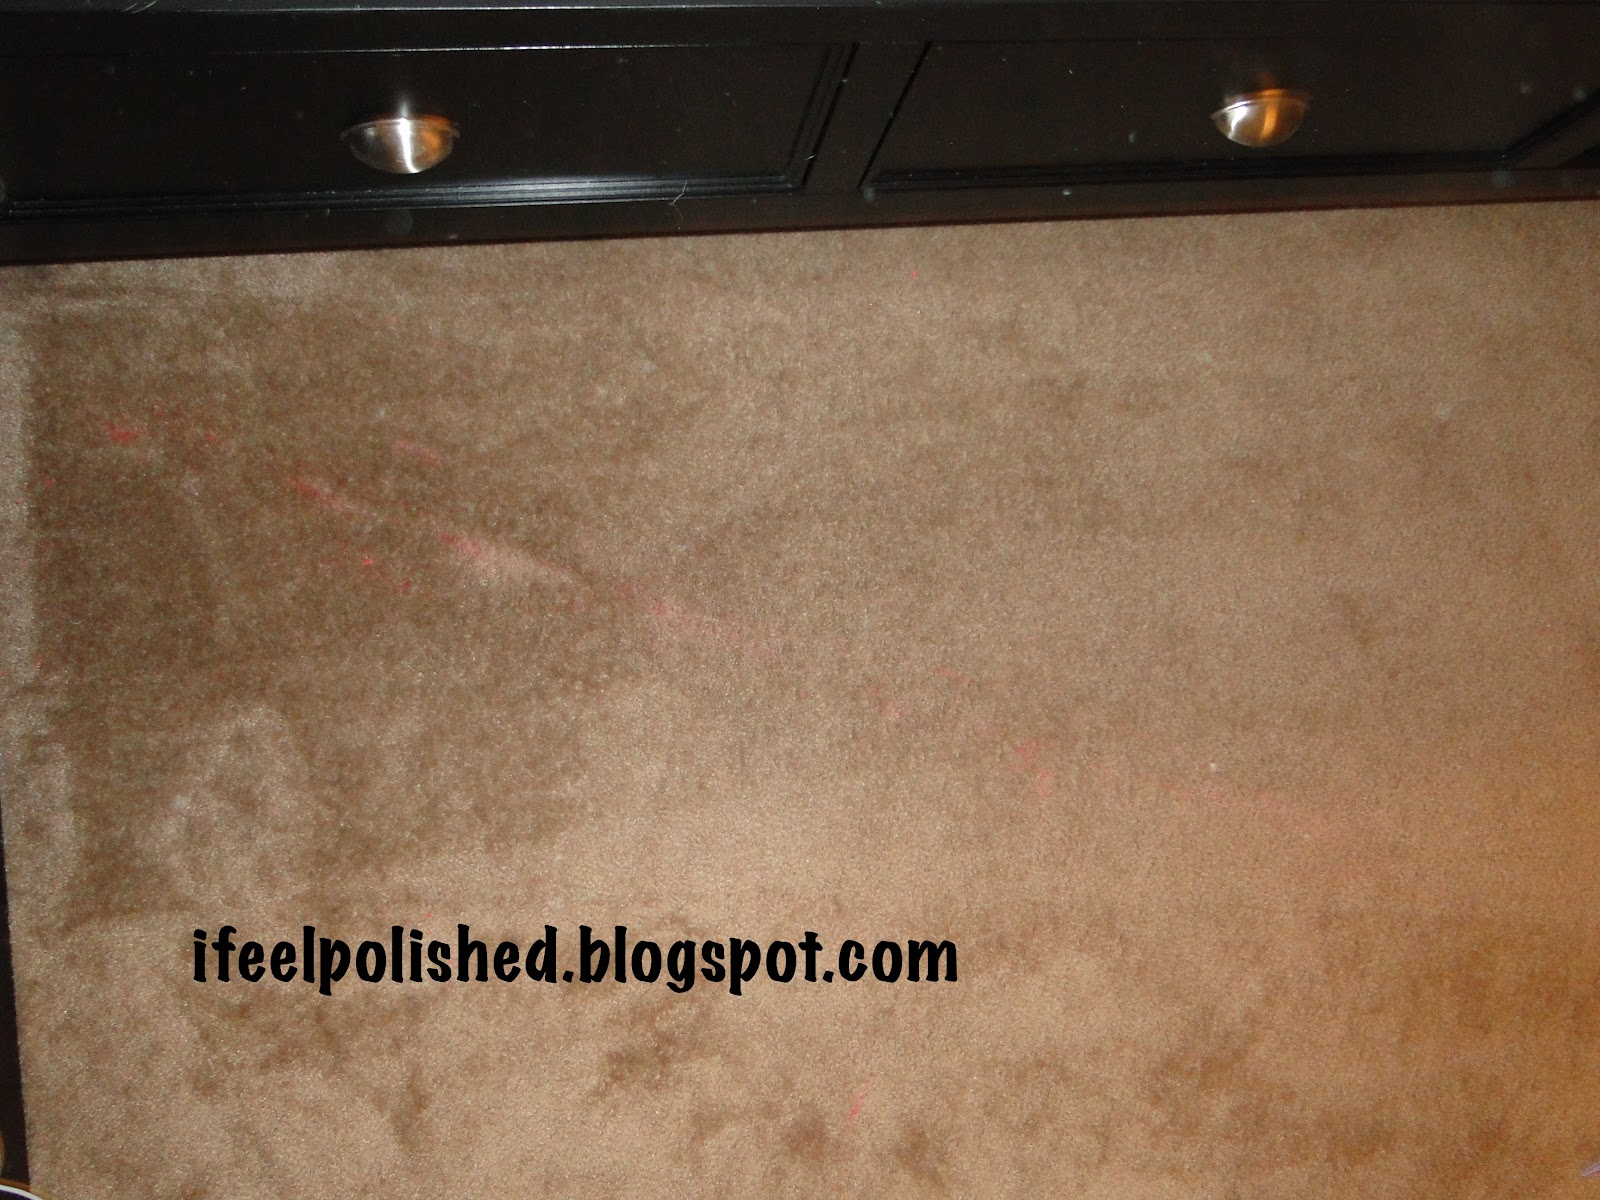 Removing dried nail polish from carpet - How To Remove Nail Polish From Carpet